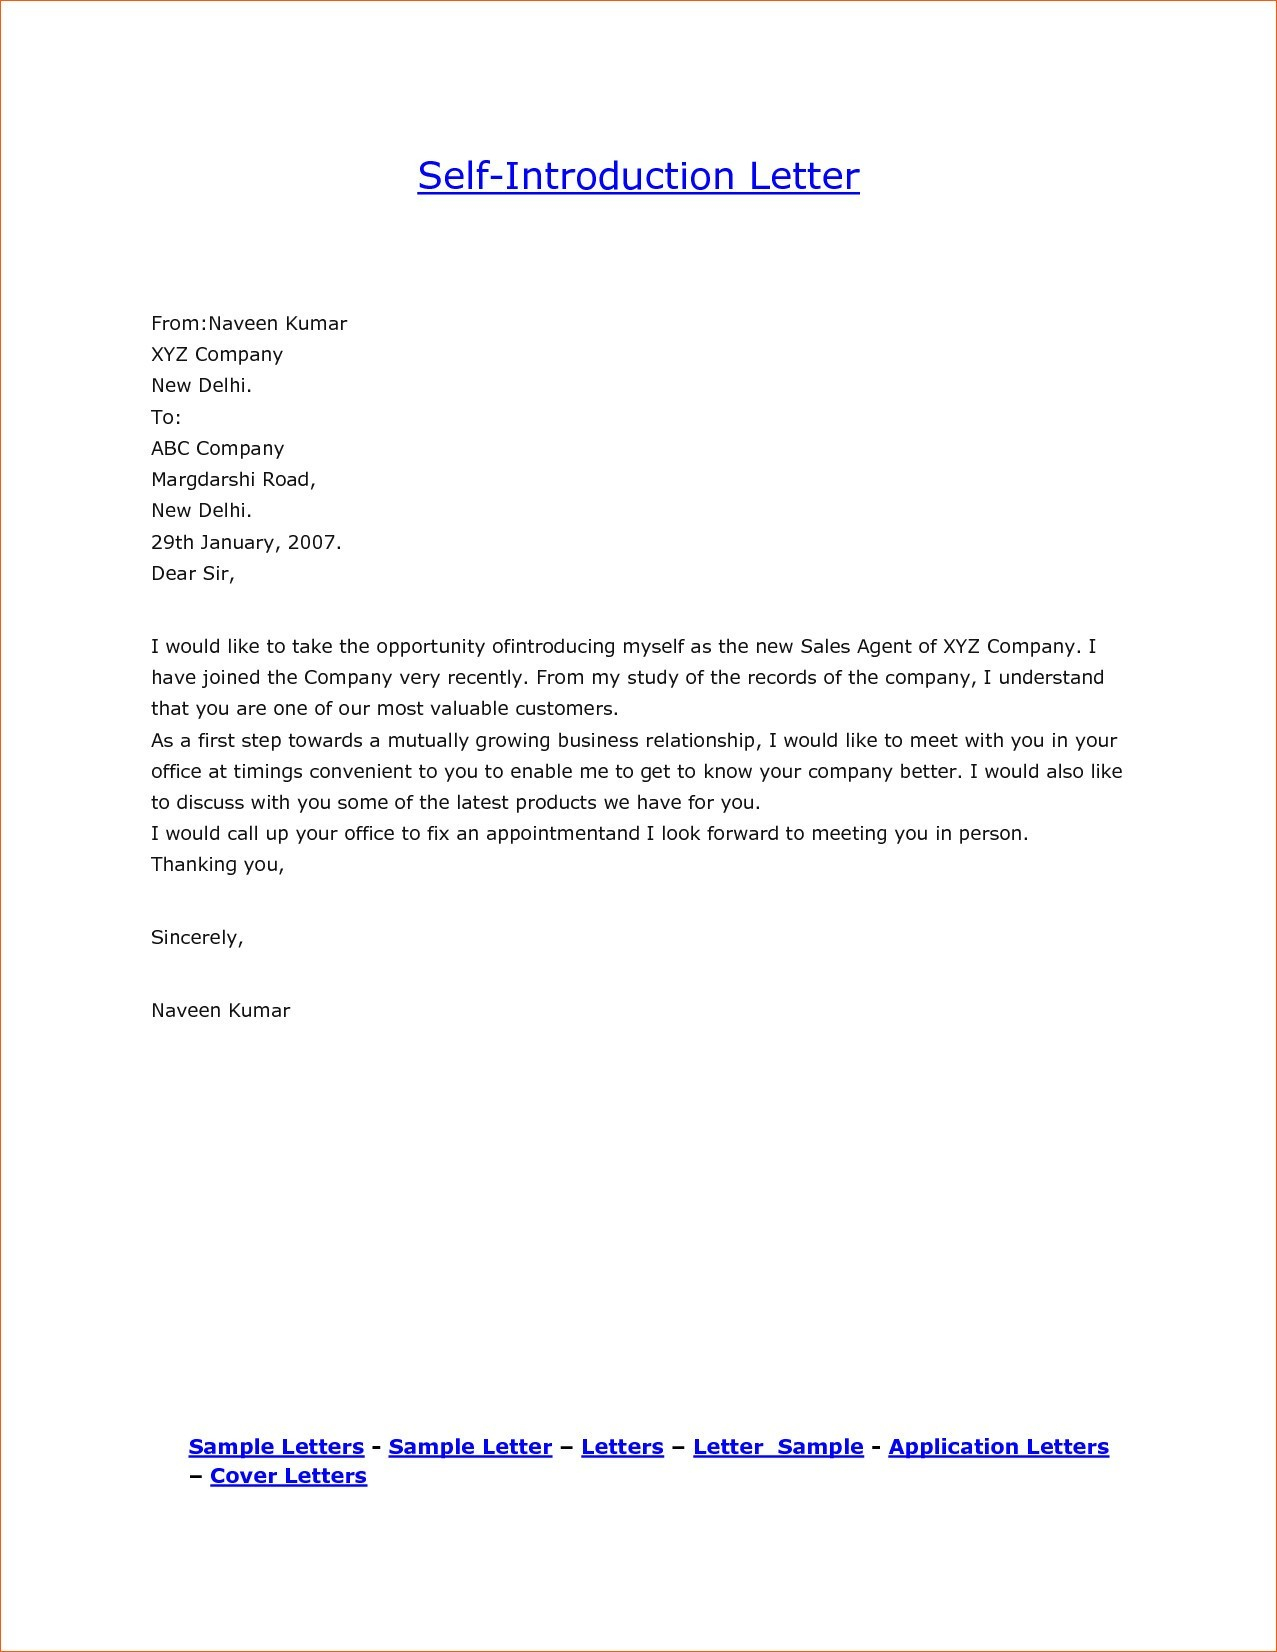 Cleaning business introduction letter template examples letter cleaning business introduction letter template introduction letter format for trading pany new samples business wajeb